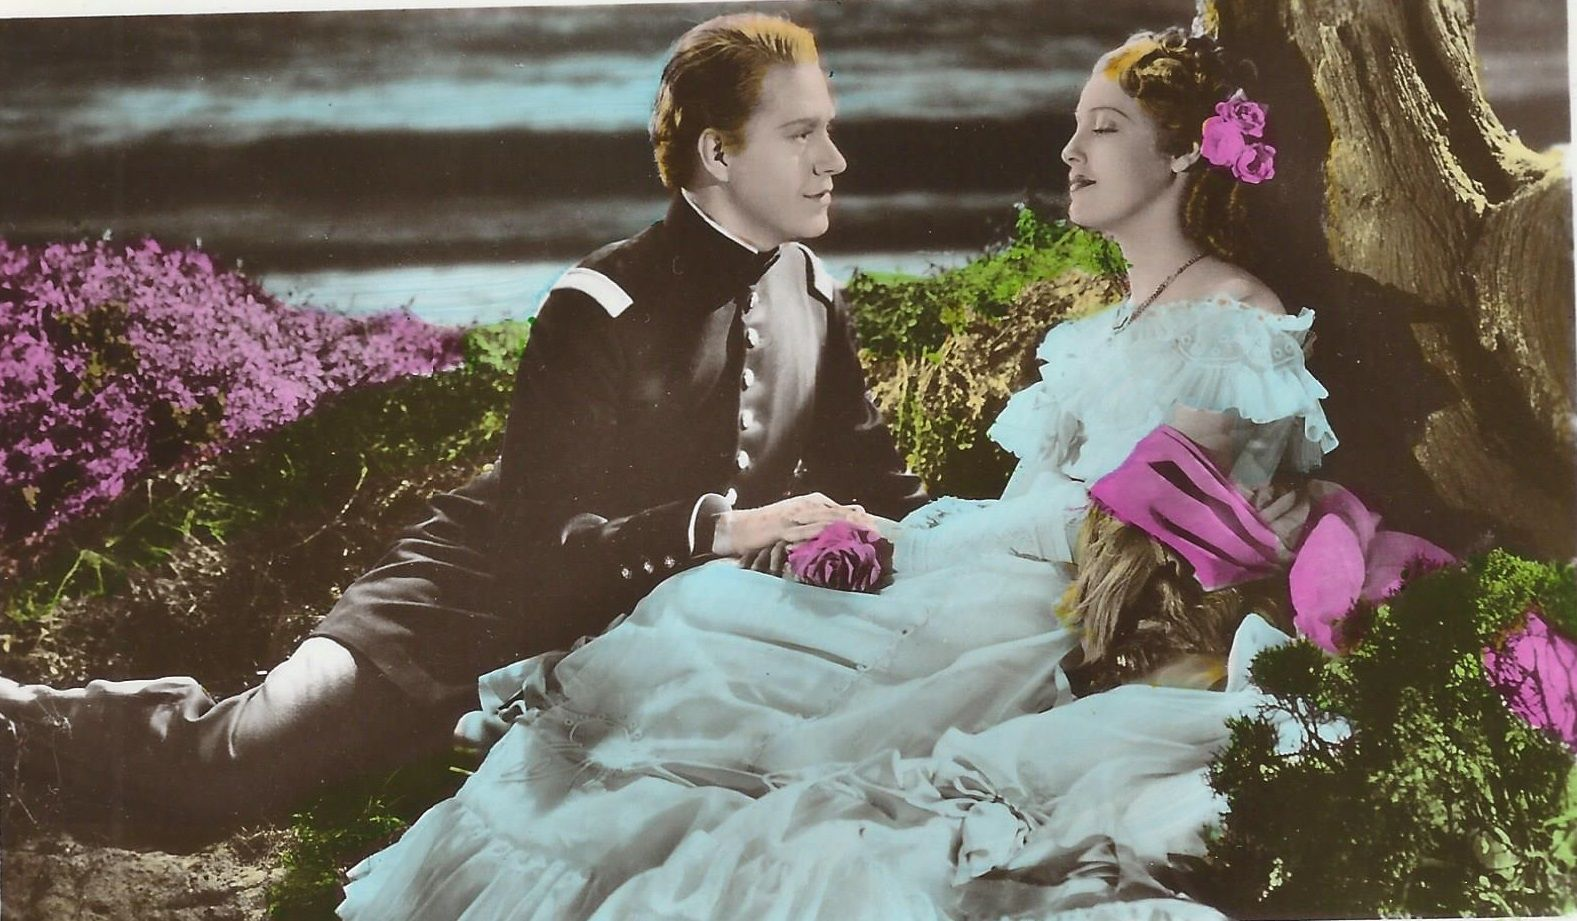 """Jeanette MacDonald and Nelson Eddy on a color postcard from The Girl of the Golden West. Back of the PC states: """" Film Partners Series. No. PC 253. This is a Handcoloured Real Photograph"""" - ESCANO COLLECTION"""